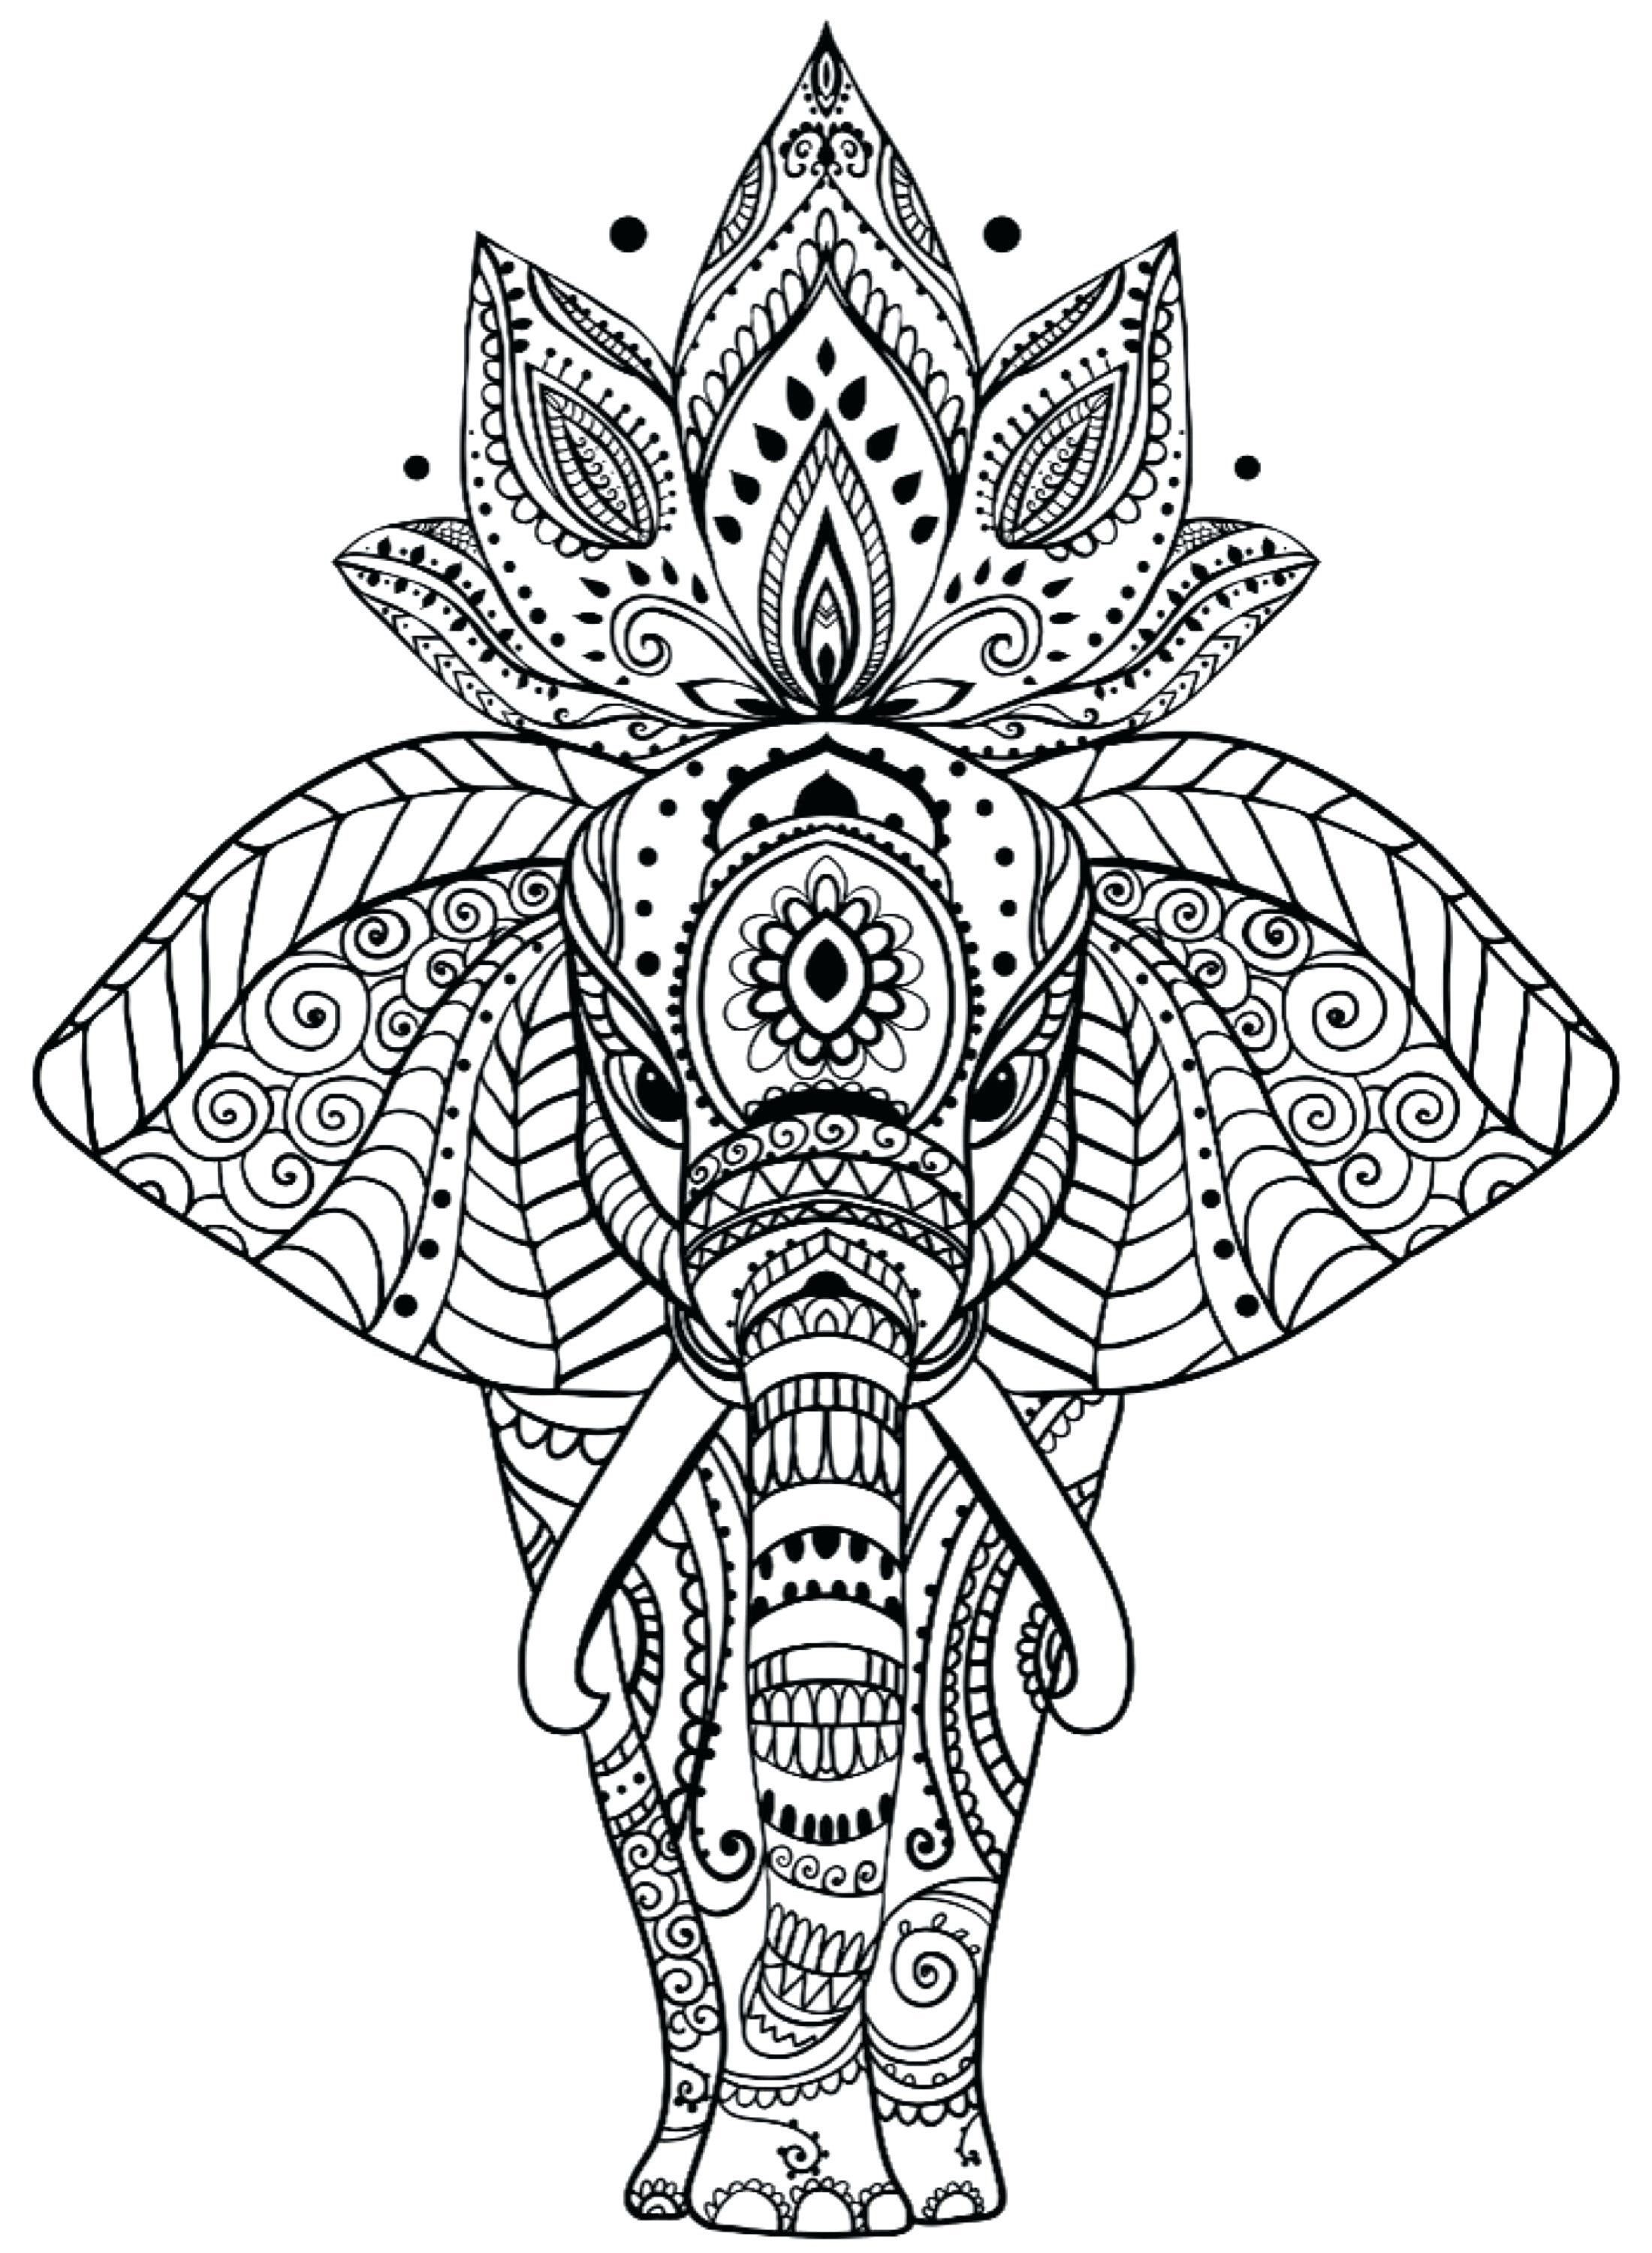 We Get Personal With Personalized Products By Treasuresbysabi Mandala Coloring Pages Elephant Coloring Page Mandala Coloring Books